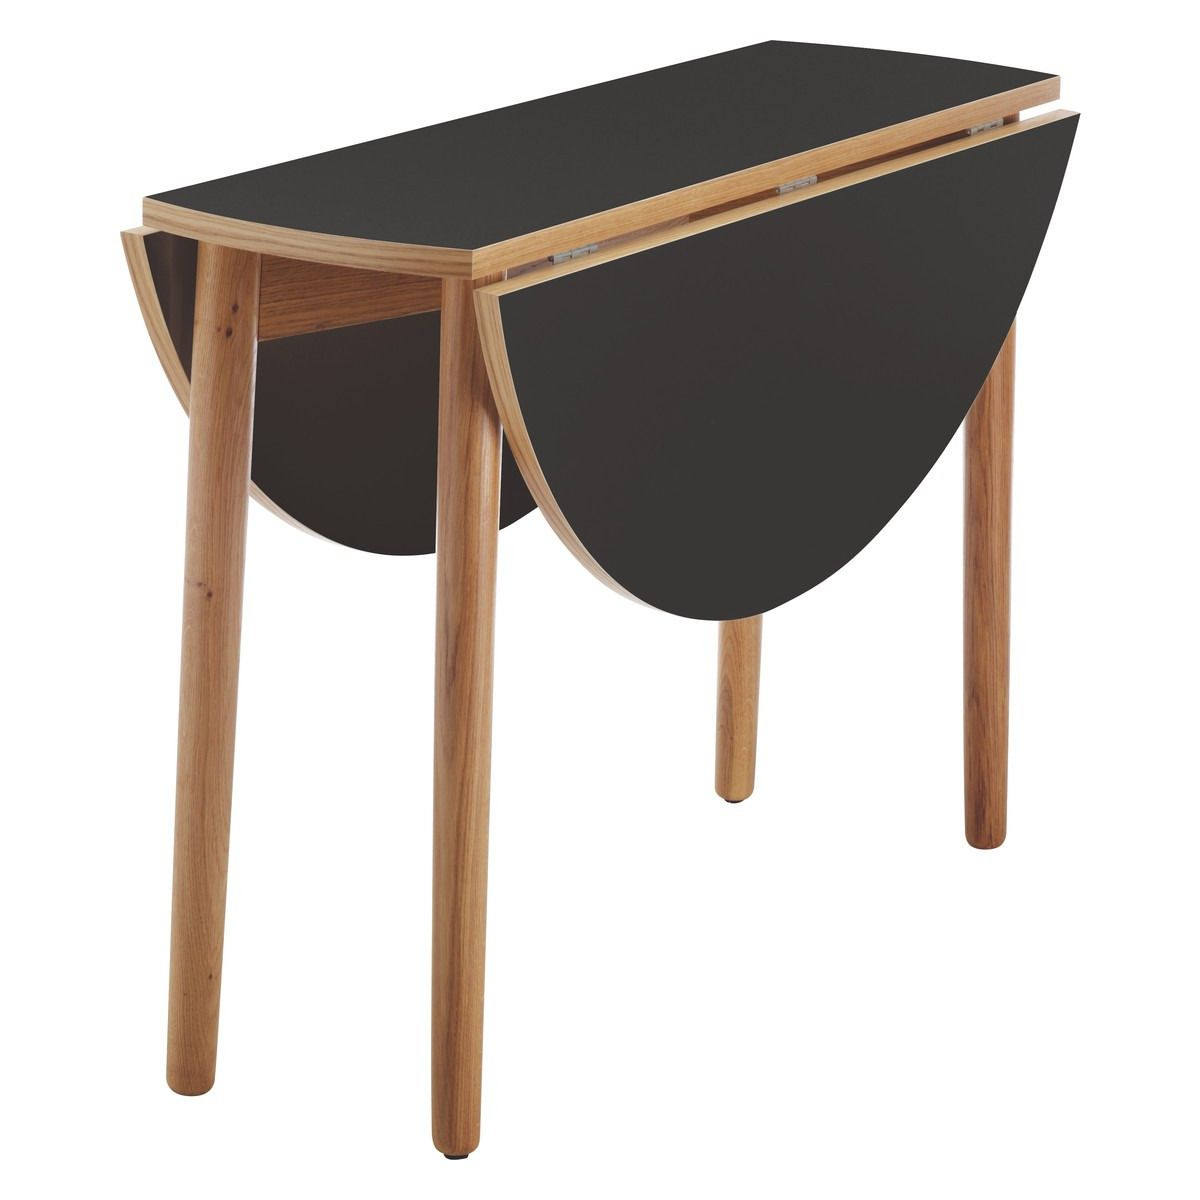 Ordinaire 100+ Round Table With Fold Down Sides   Cool Modern Furniture Check More At  Http